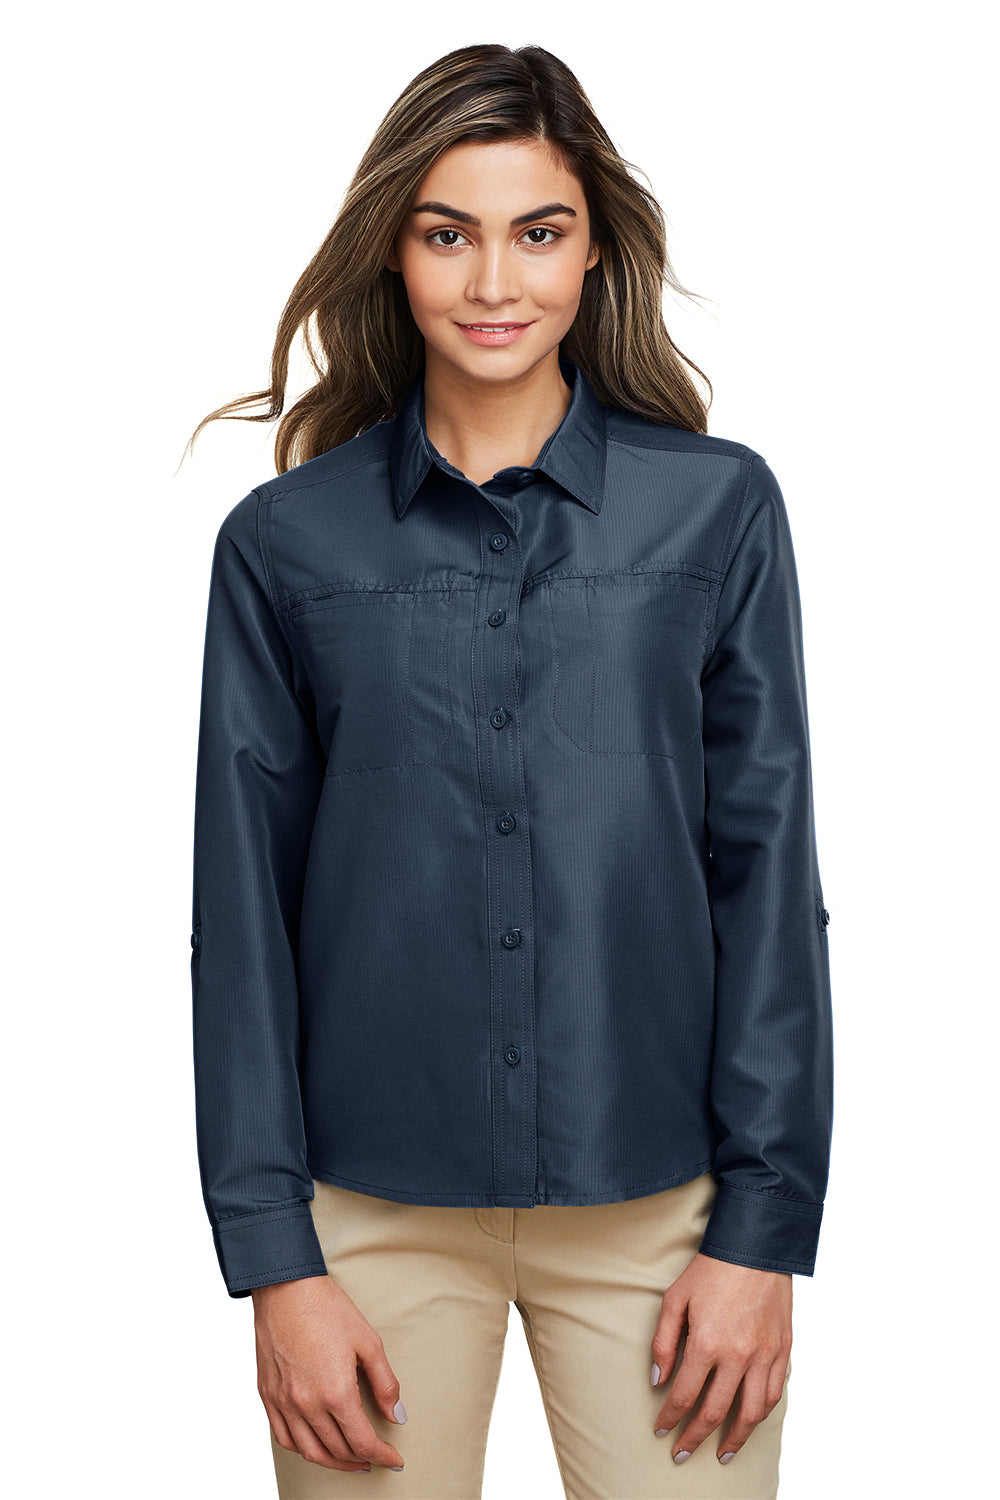 Harriton M580LW Womens Key West Performance Moisture Wicking Long Sleeve Button Down Shirt Navy Blue Front